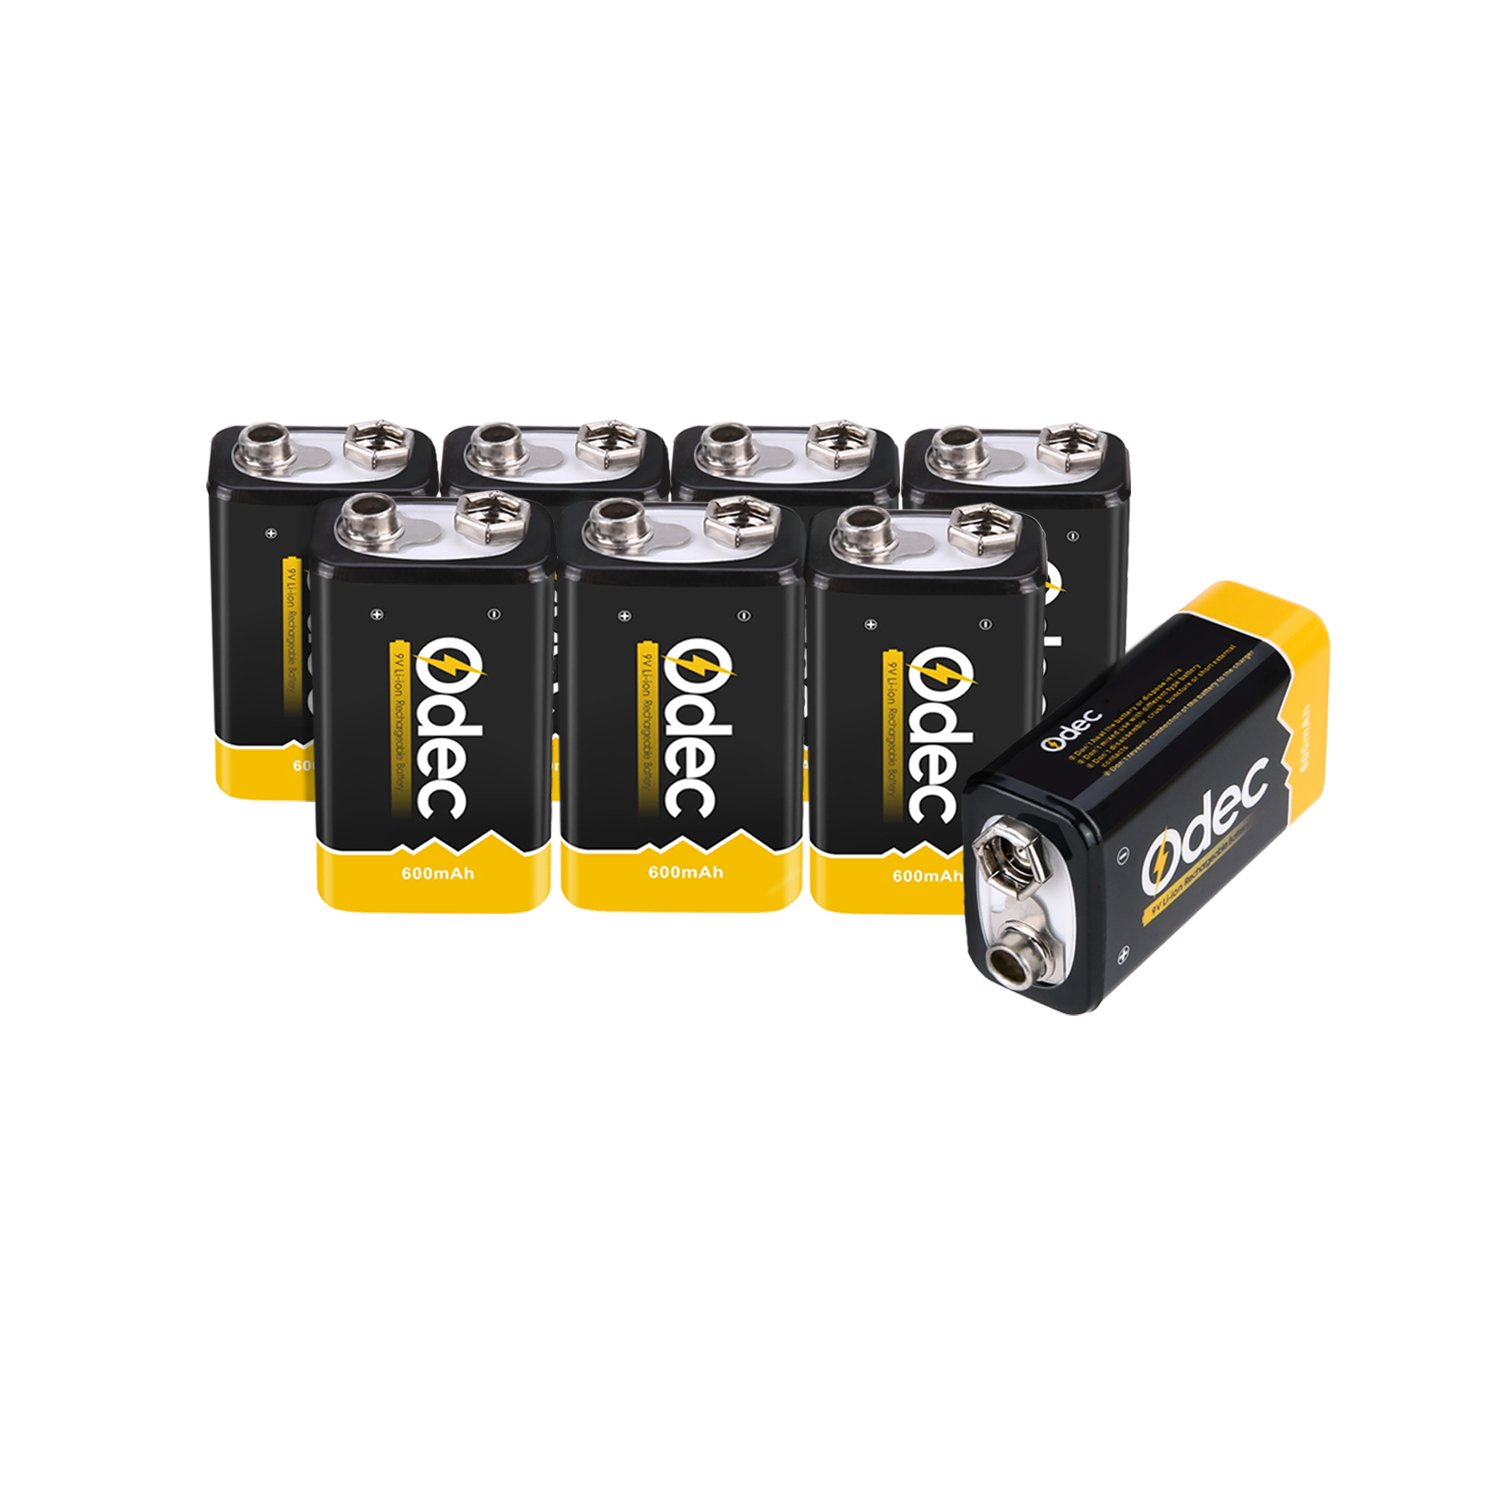 Odec 9V Battery, 8 Pack 600mAh Lithium Rechargeable Batteries